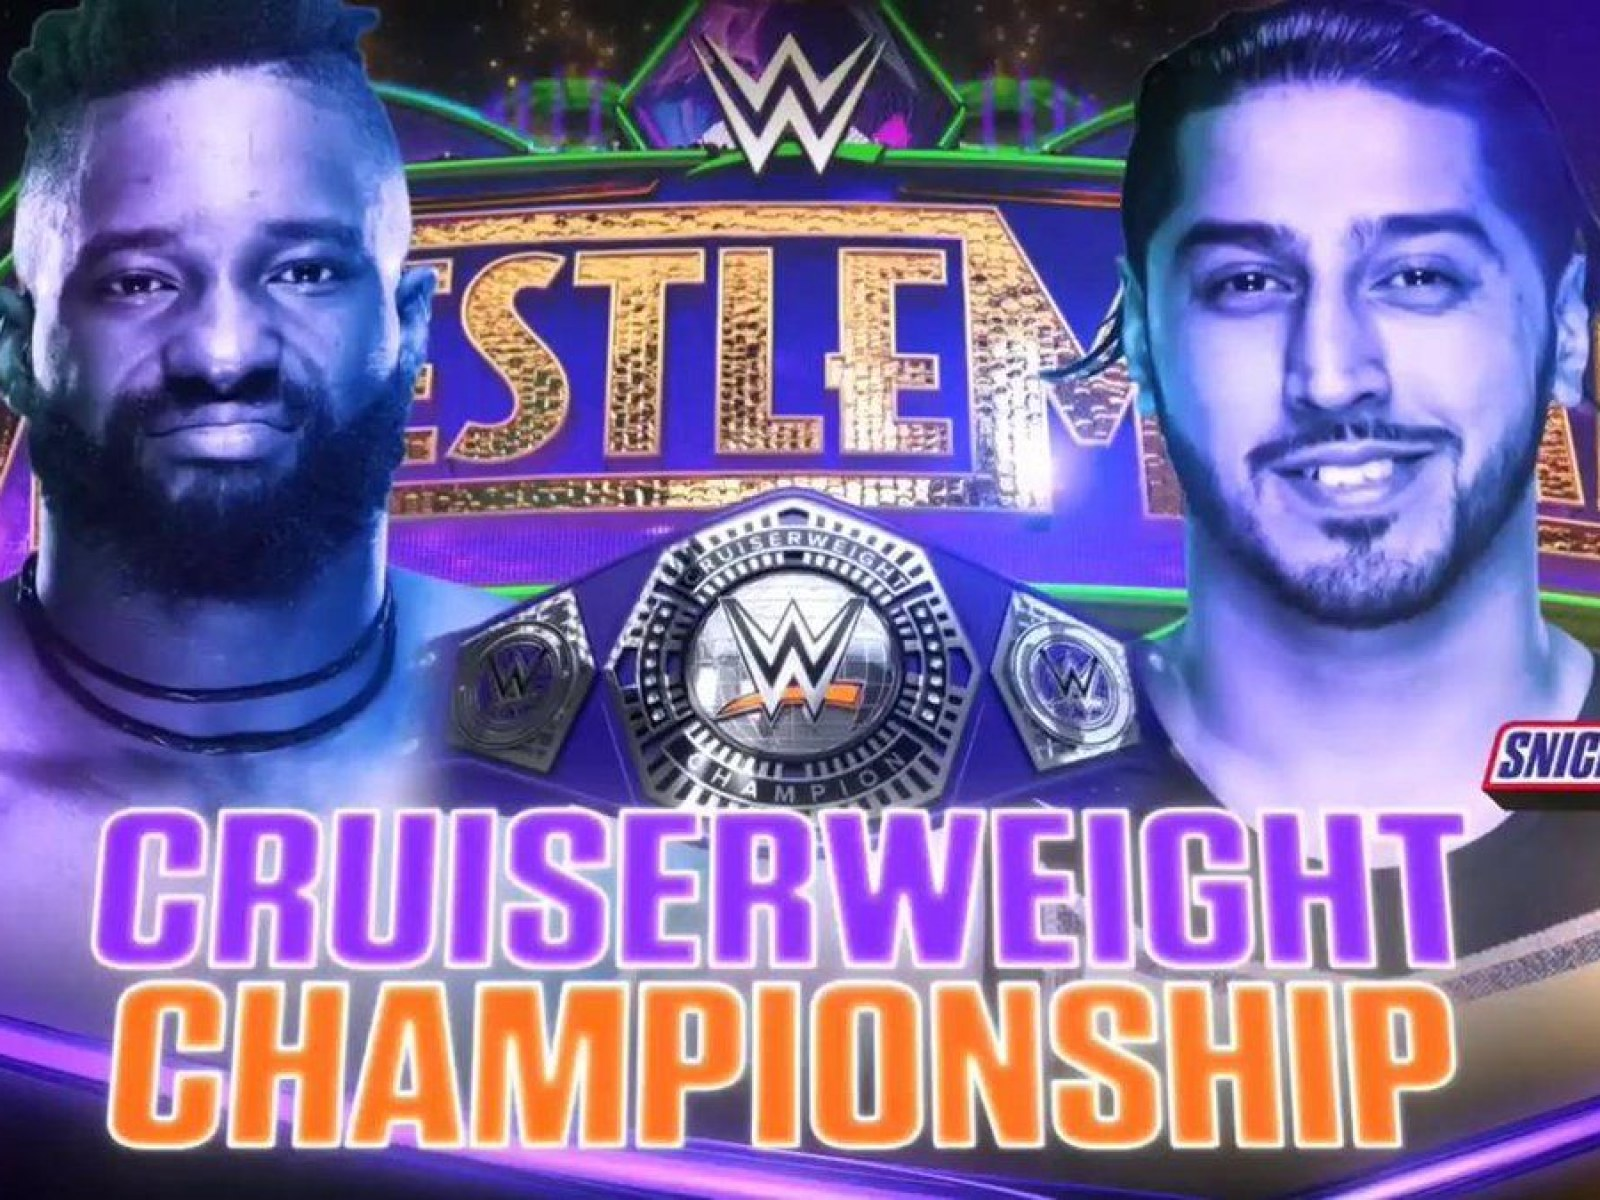 WrestleMania 34: Why The Cruiserweight Championship Match Has Me Hyped